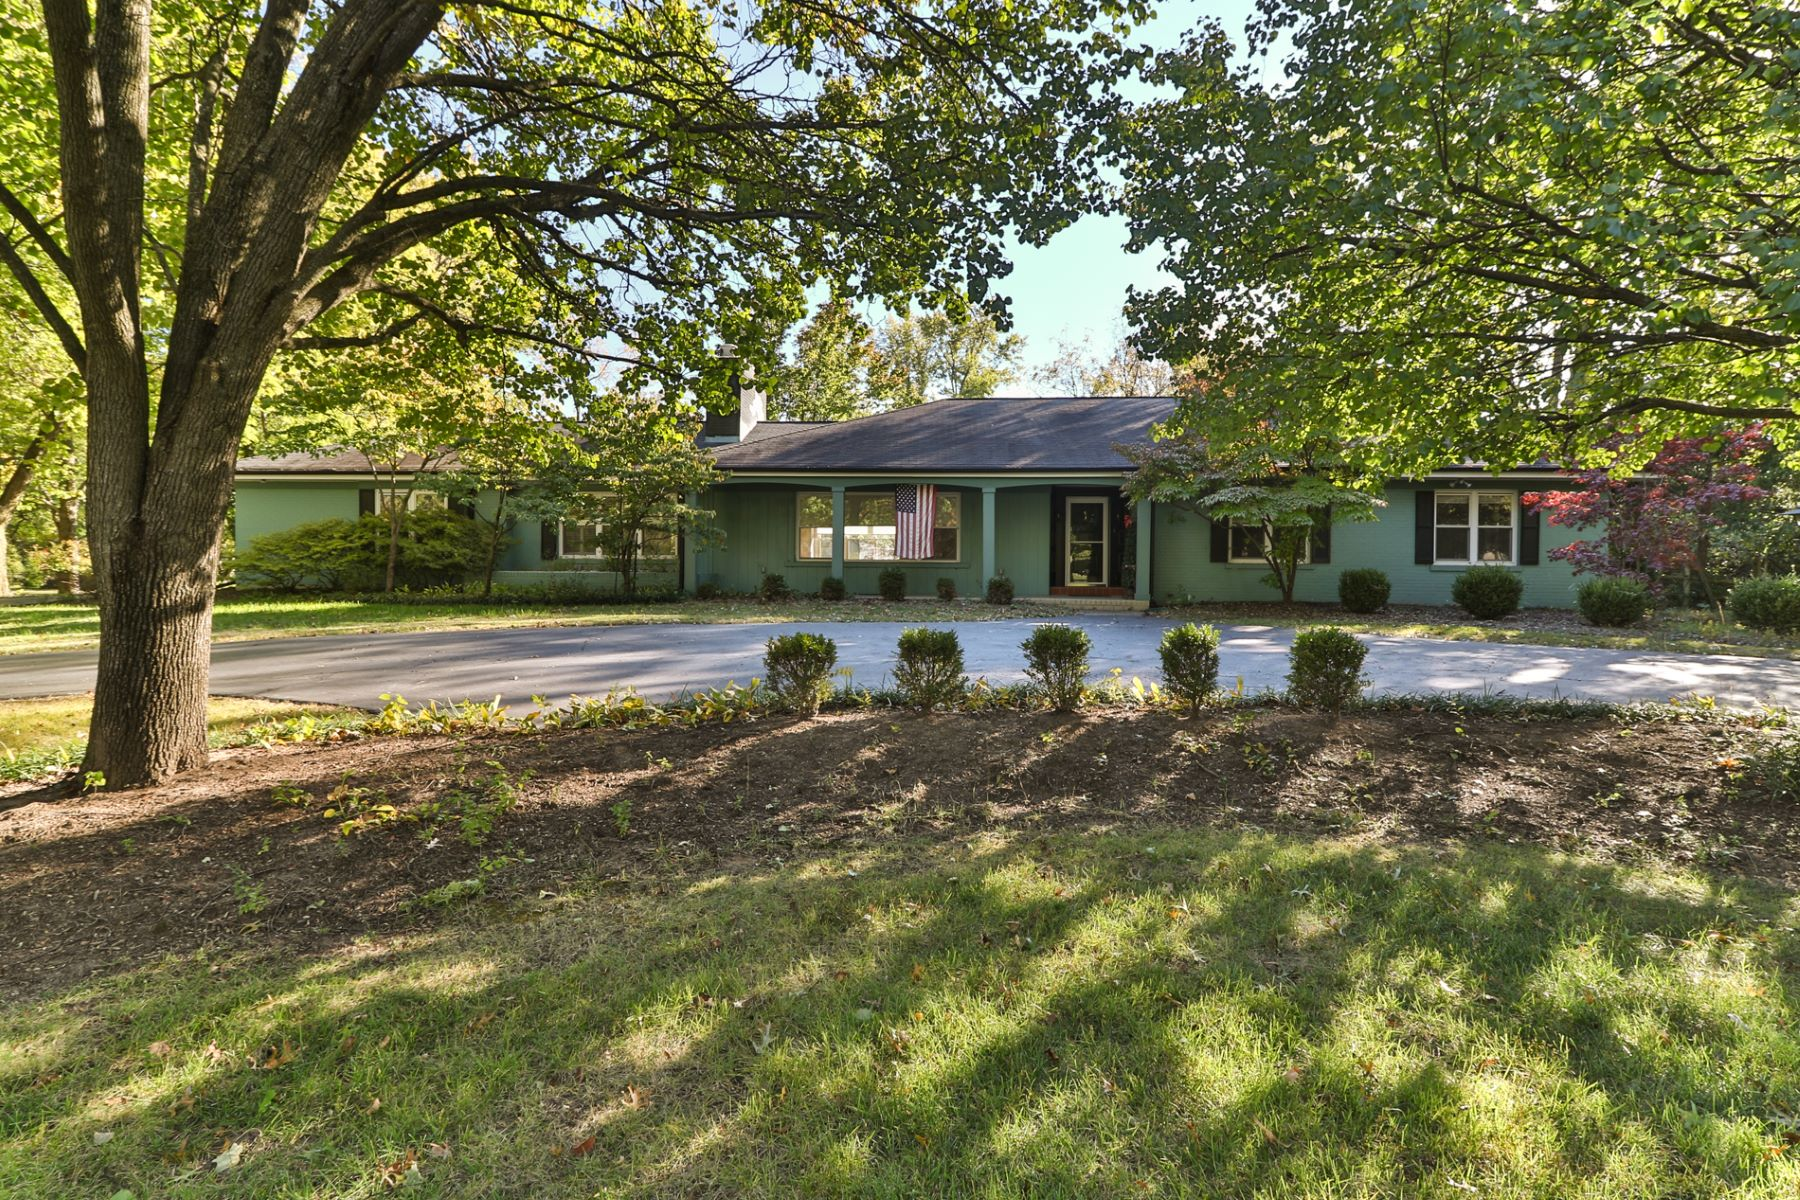 Single Family Home for Sale at Clayton Rd 11600 Clayton Road St. Louis, Missouri 63131 United States